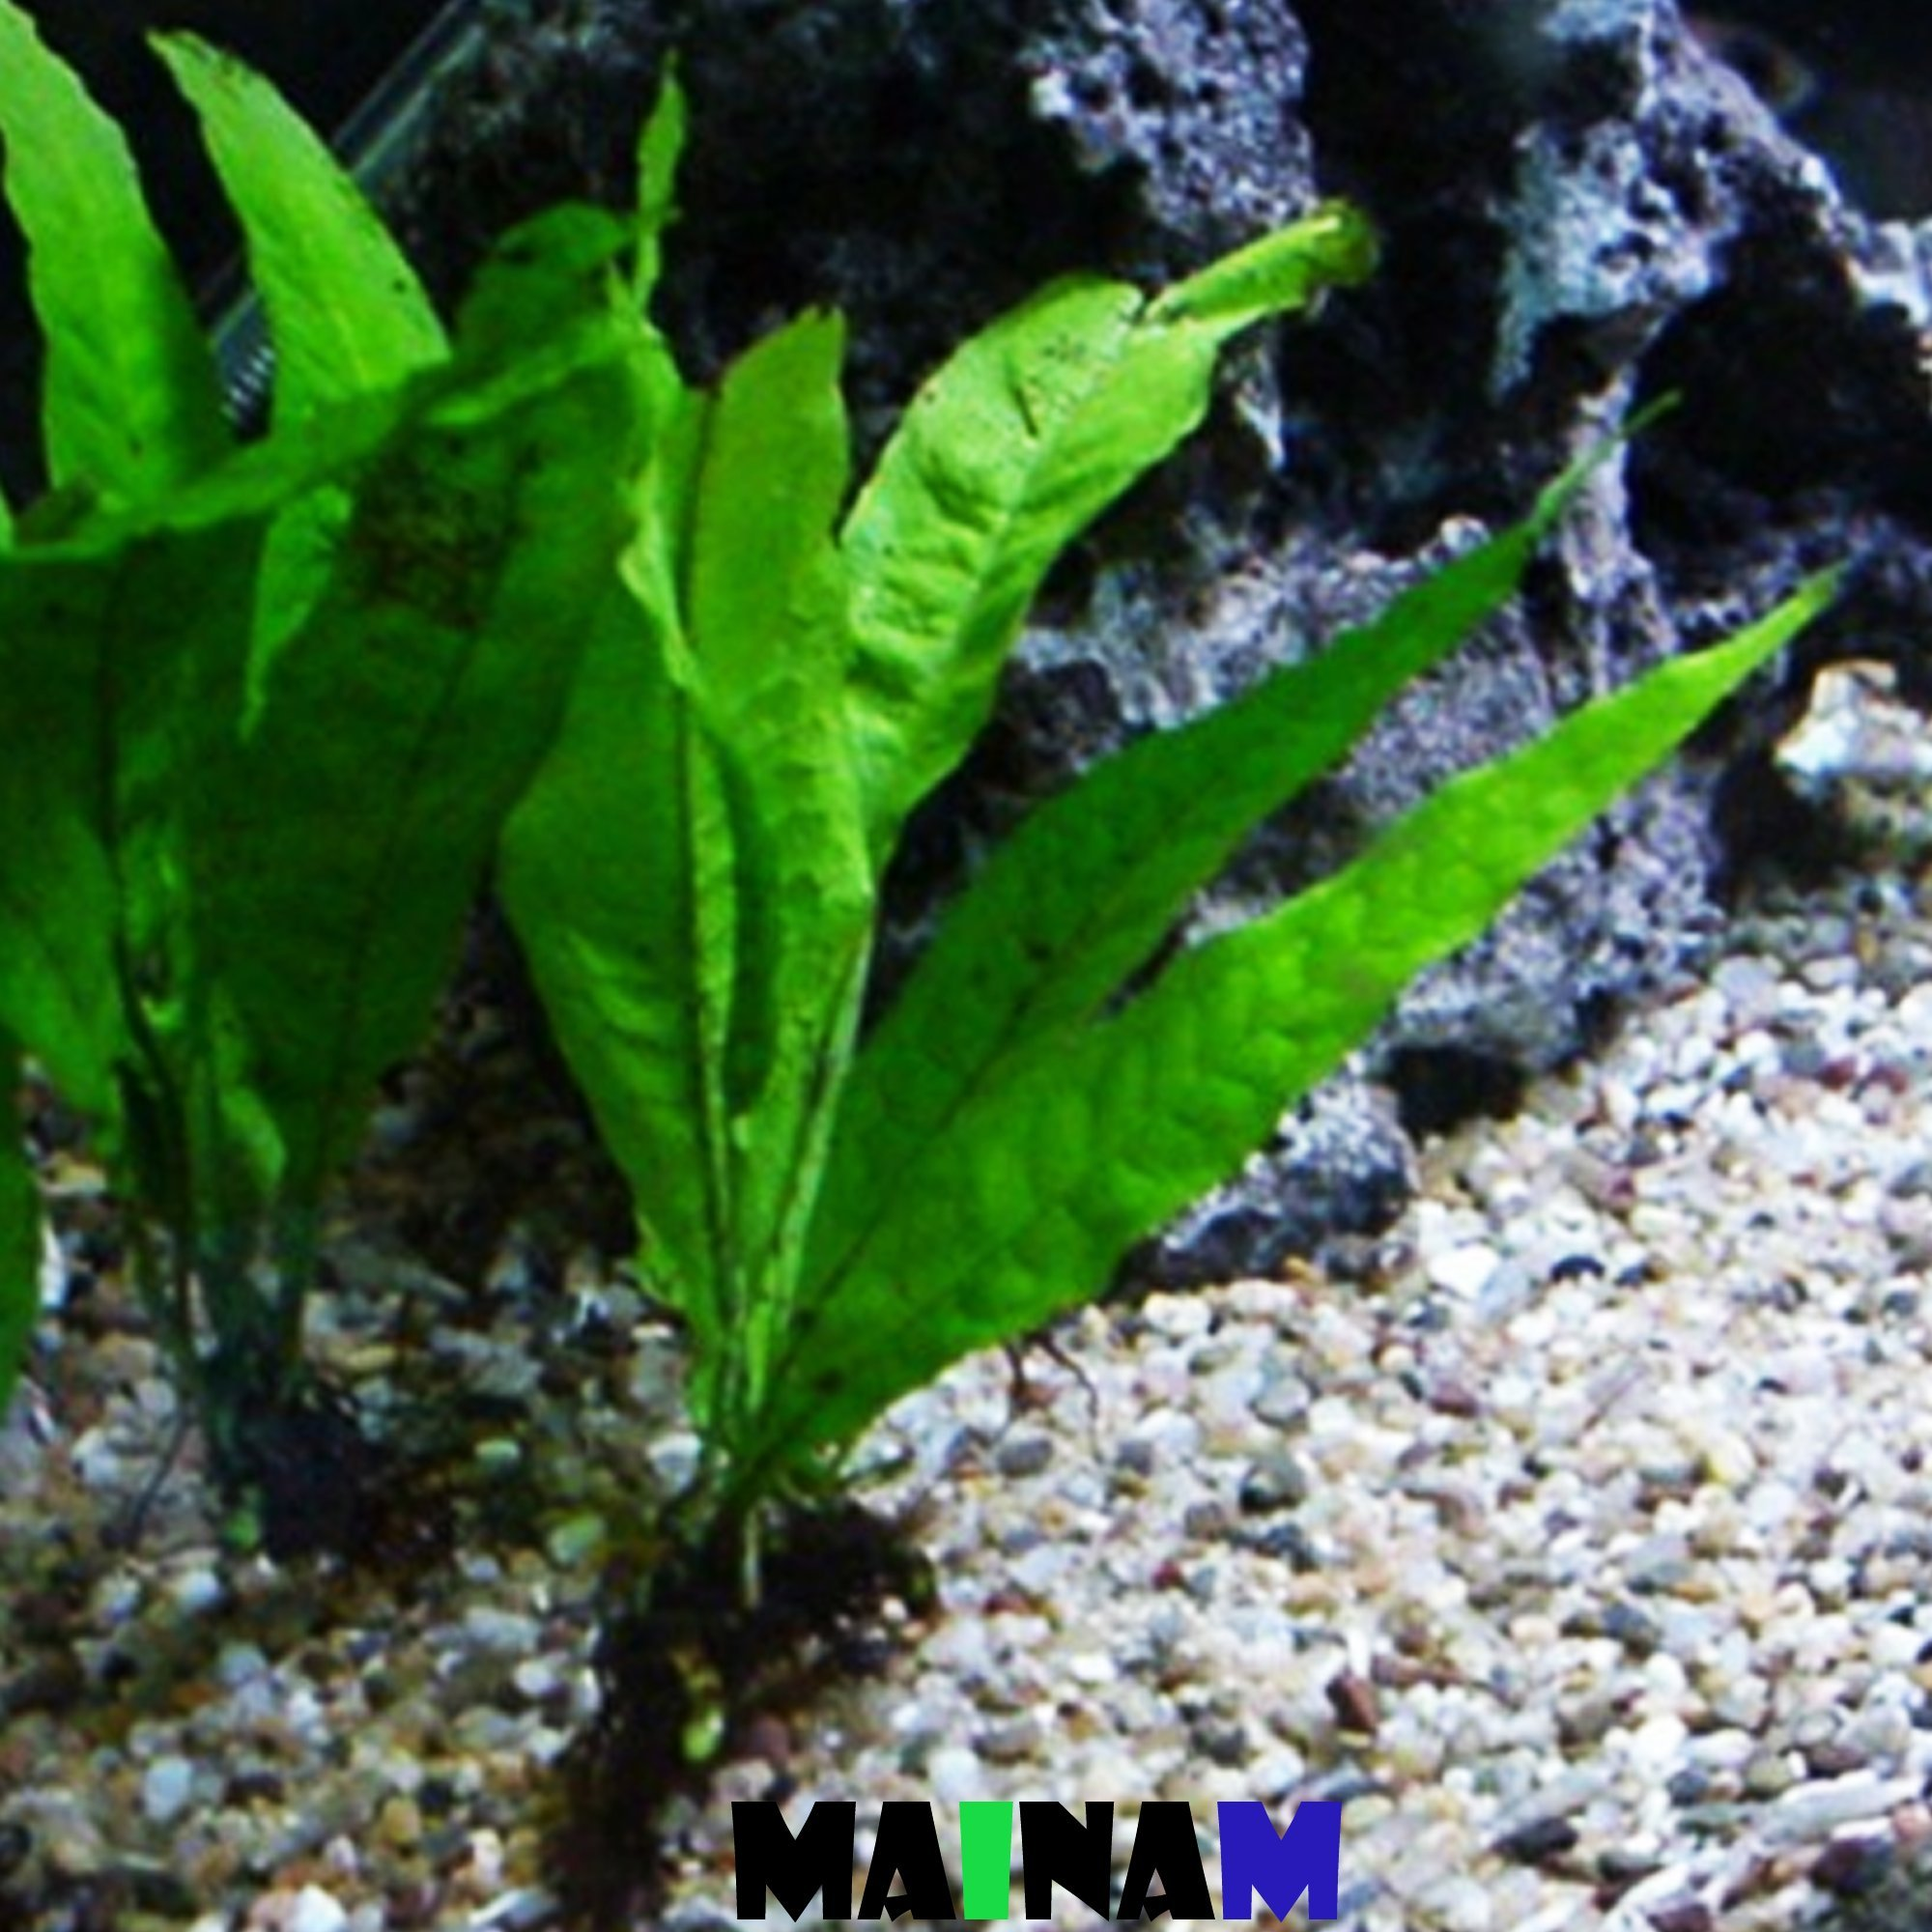 Java Fern Microsorum Pteropus Potted Freshwater Easy Tropical Live Aquarium Plant Decorations 3 DAYS GUARANTEE By Mainam